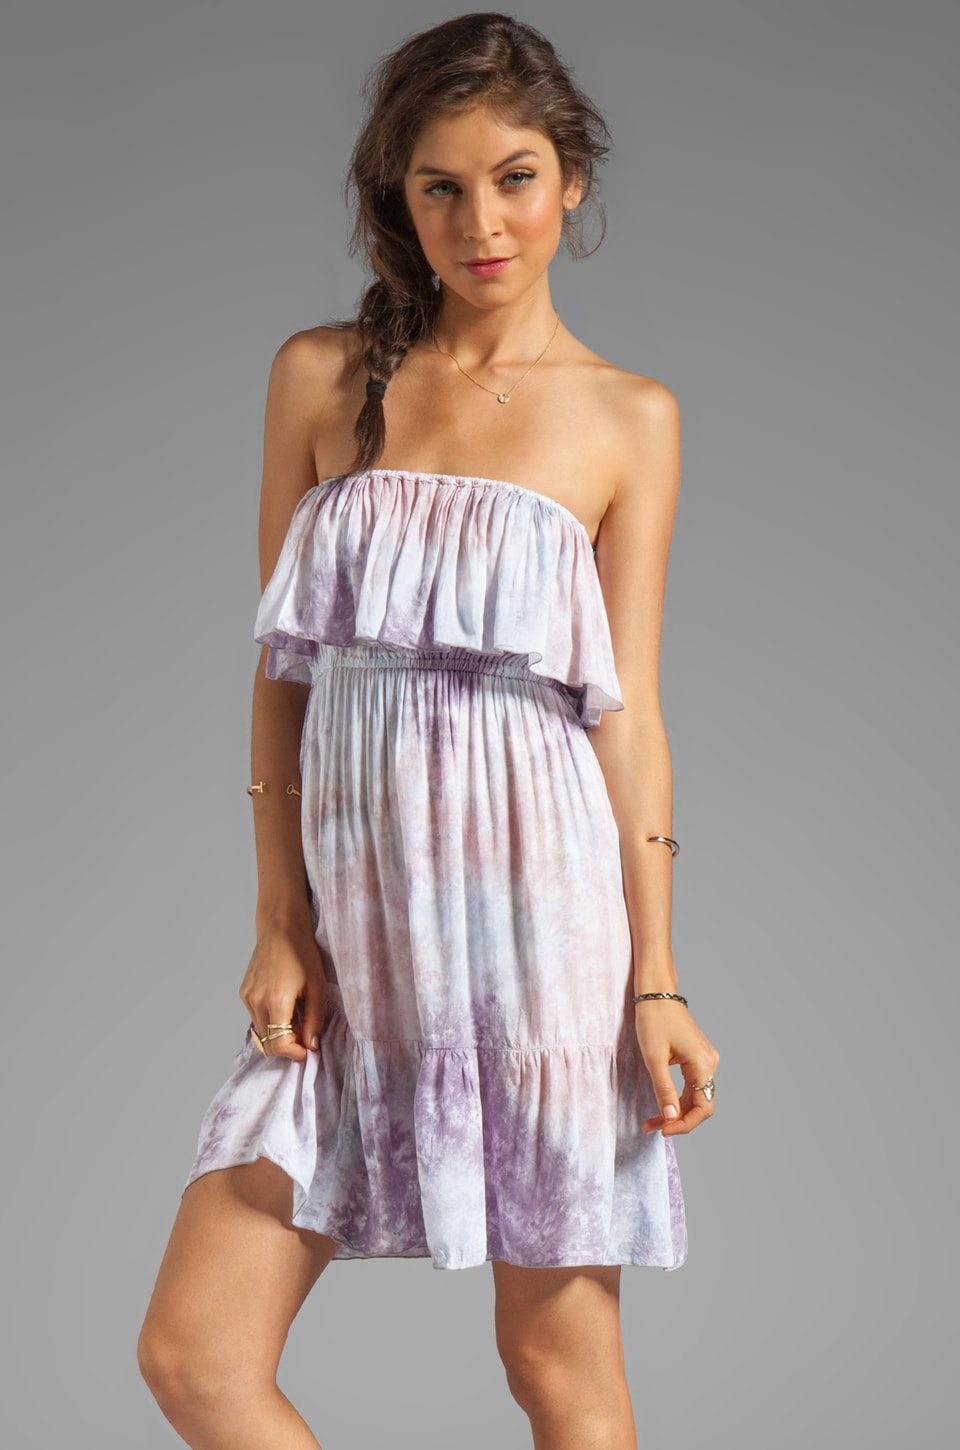 Tiare Hawaii Frill Short Dress in Mauve Grey Smoke